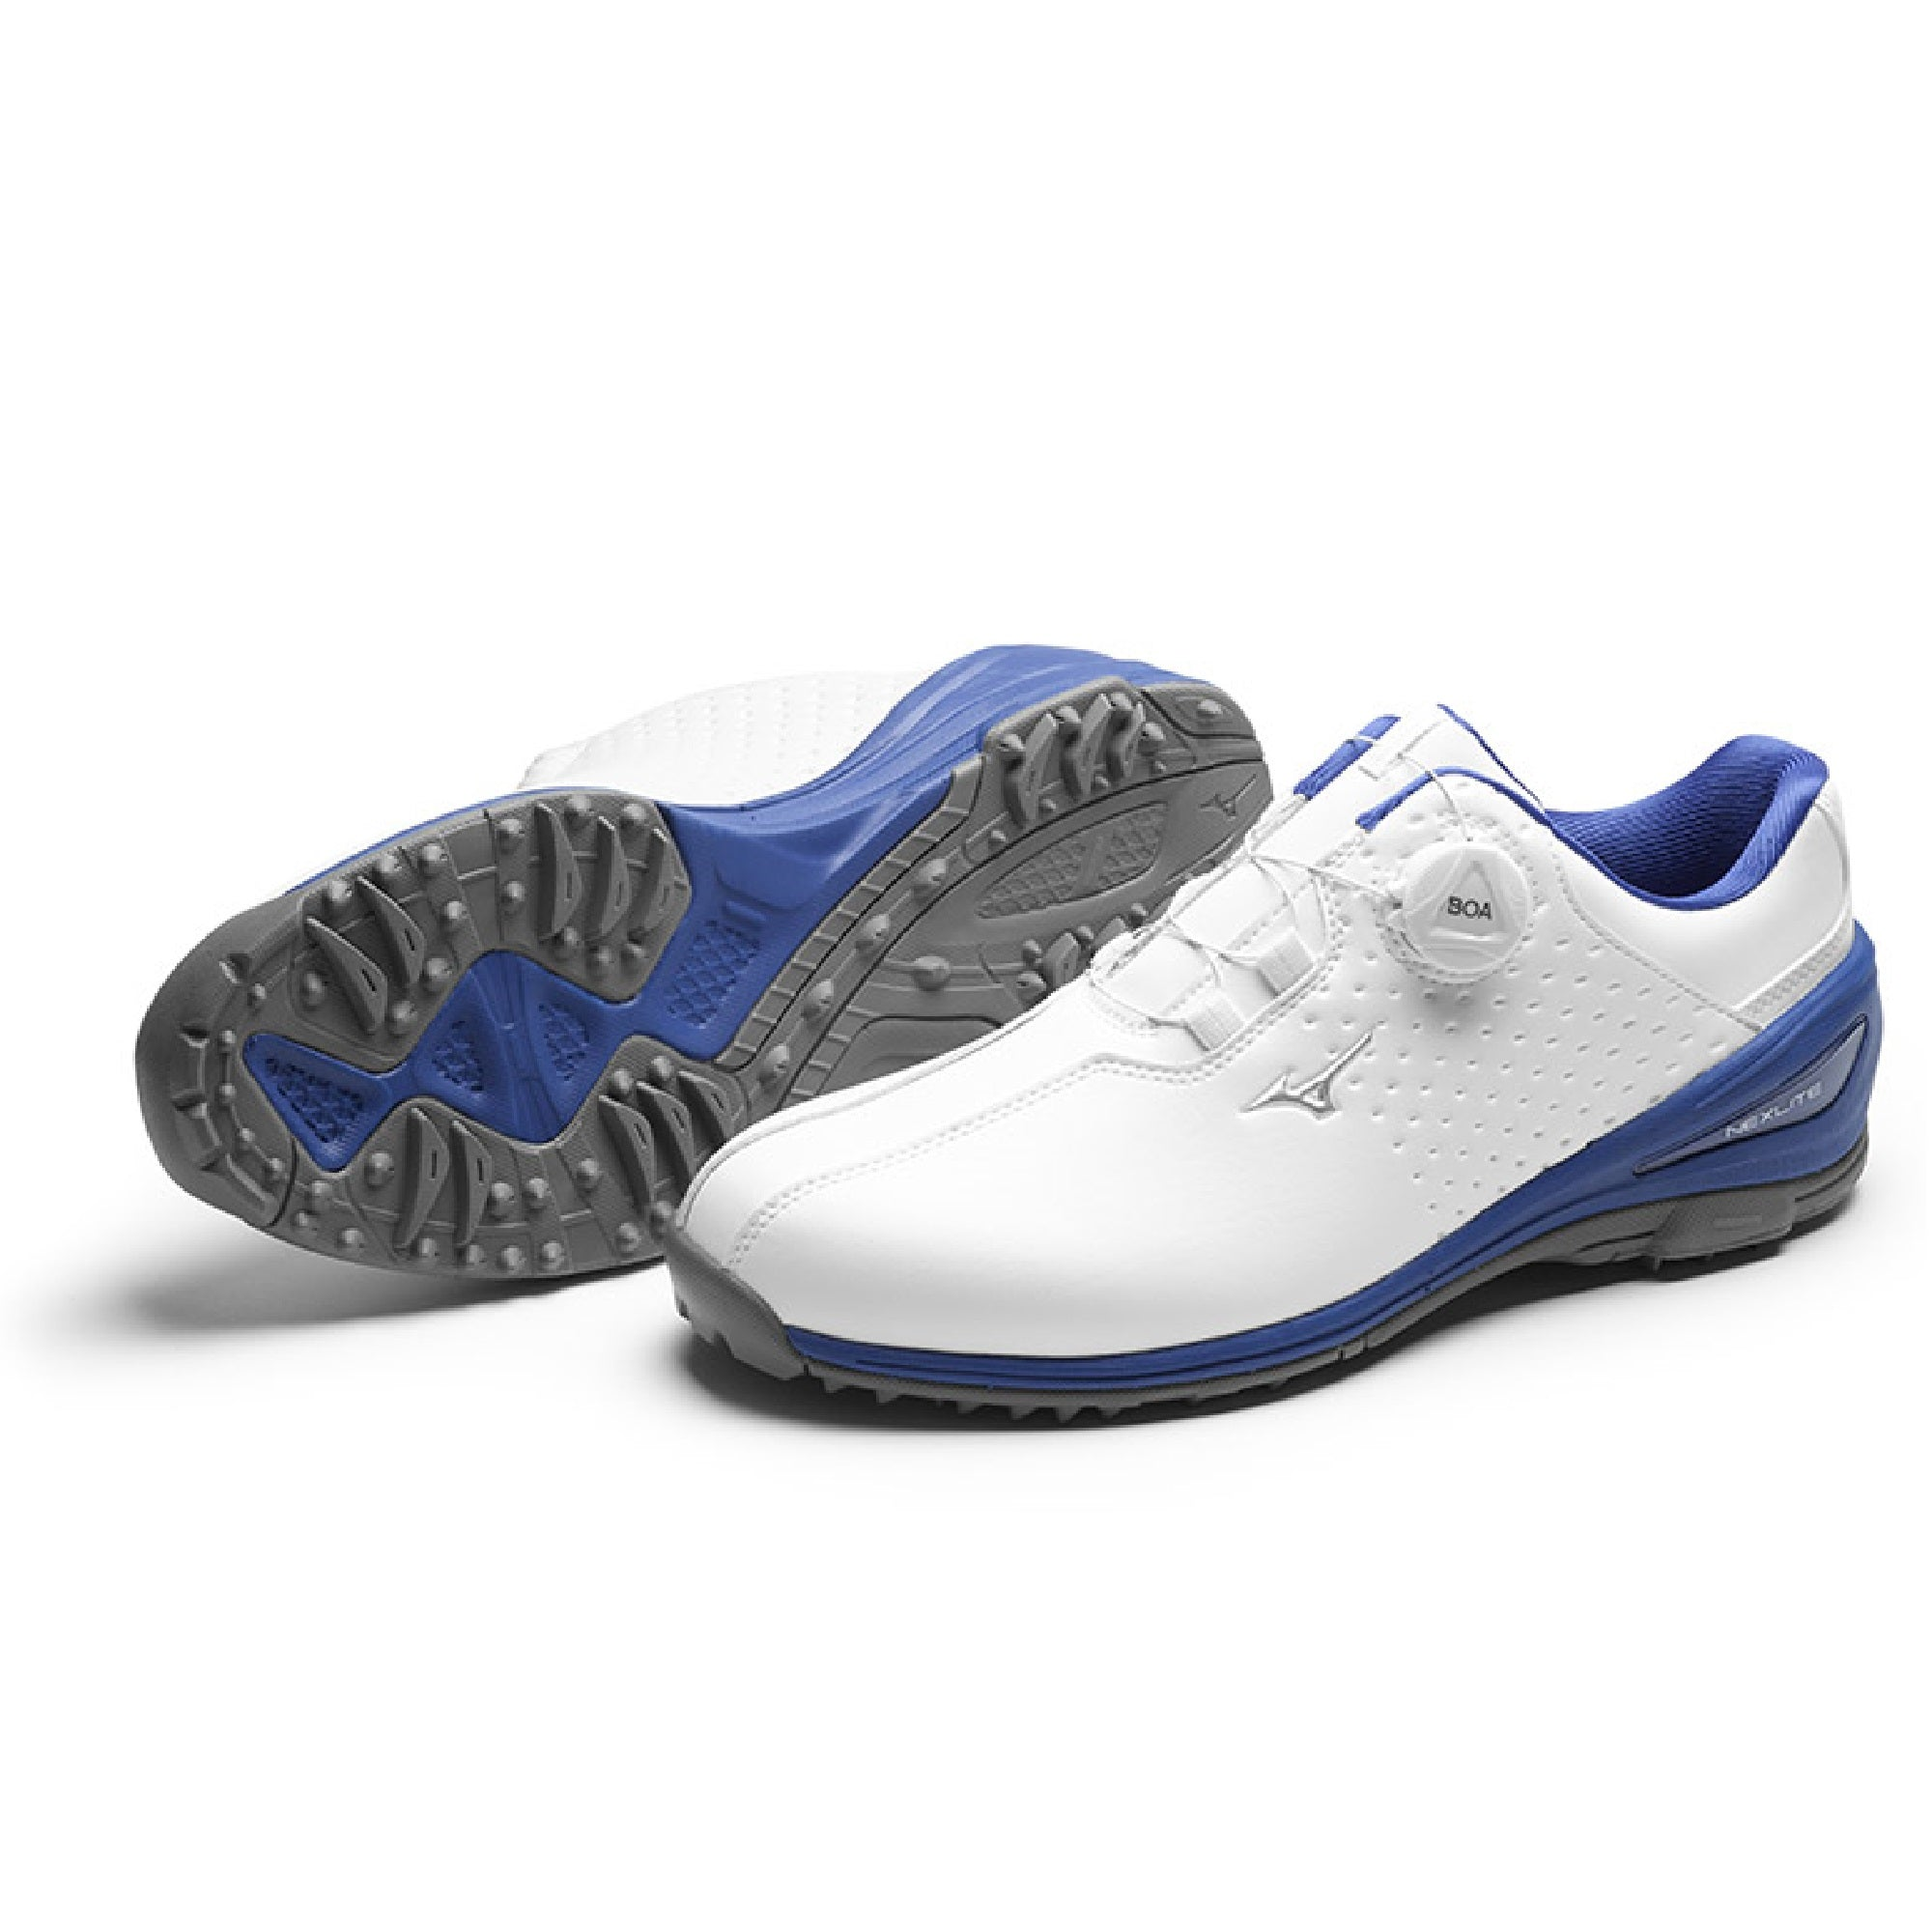 Mizuno Nexlite Spikeless 006 BOA Golf Shoes 51GM1920